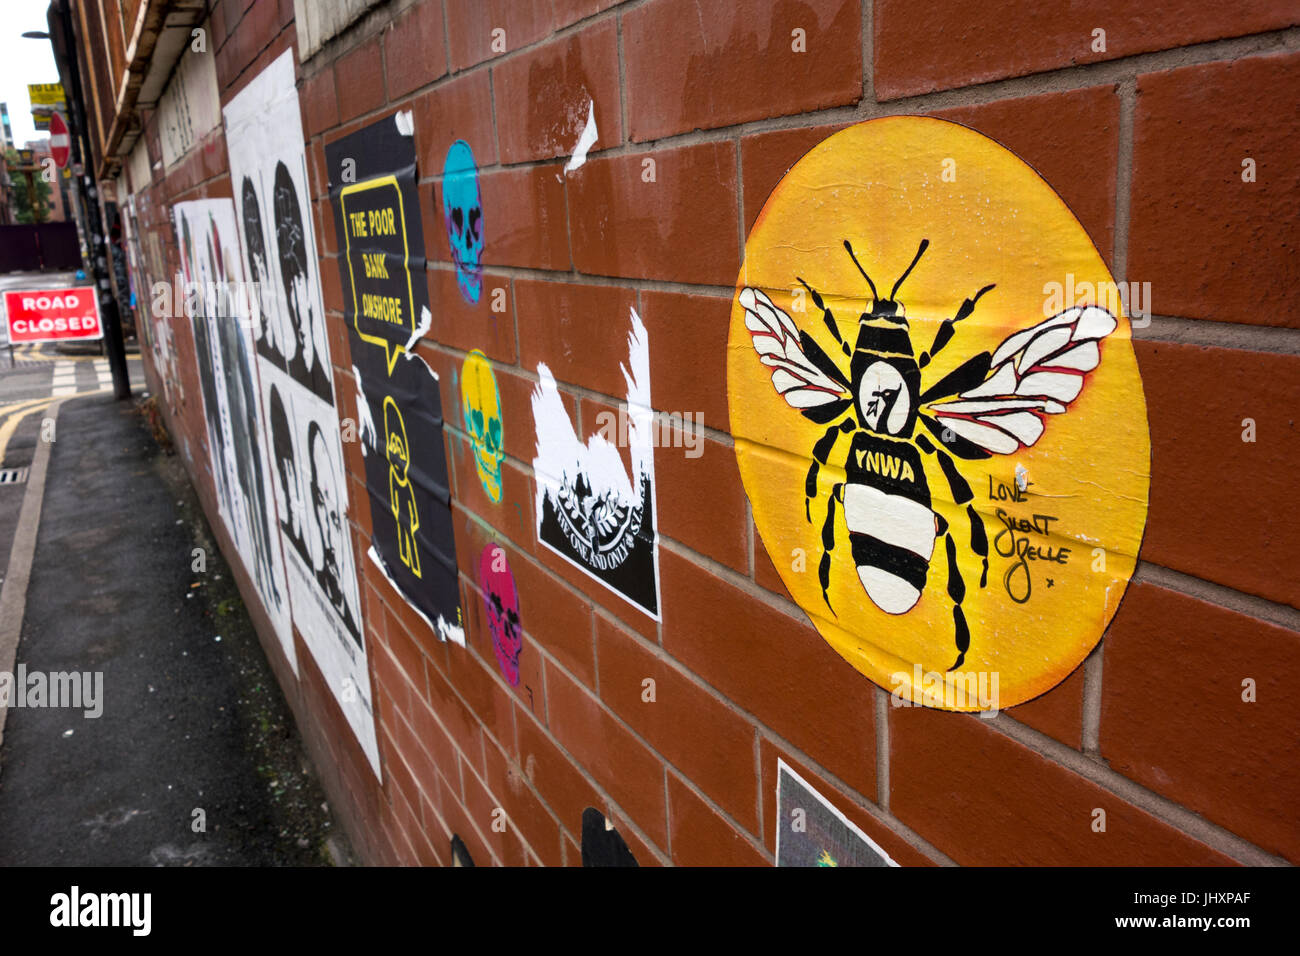 YNWA Manchester Bee on a wall covered with posters on Oldham Street, Northern Quarter, Manchester, UK - Stock Image